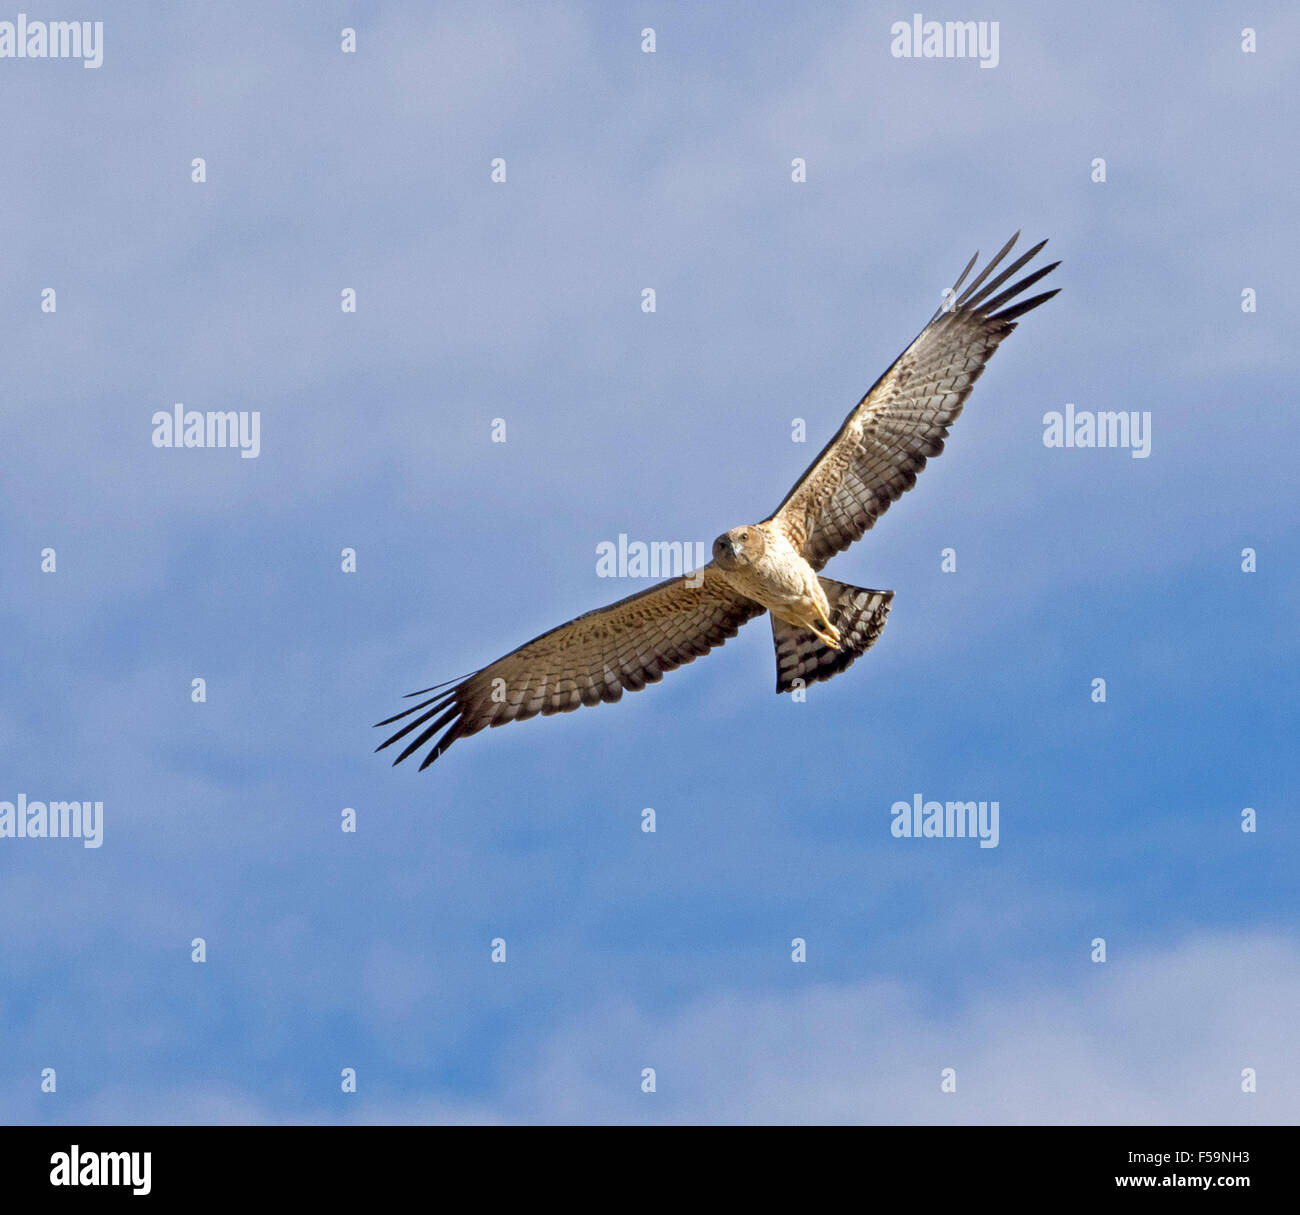 Spotted harrier, Circus assimilis , bird of prey in flight with wings spread out against blue sky in outback Australia Stock Photo